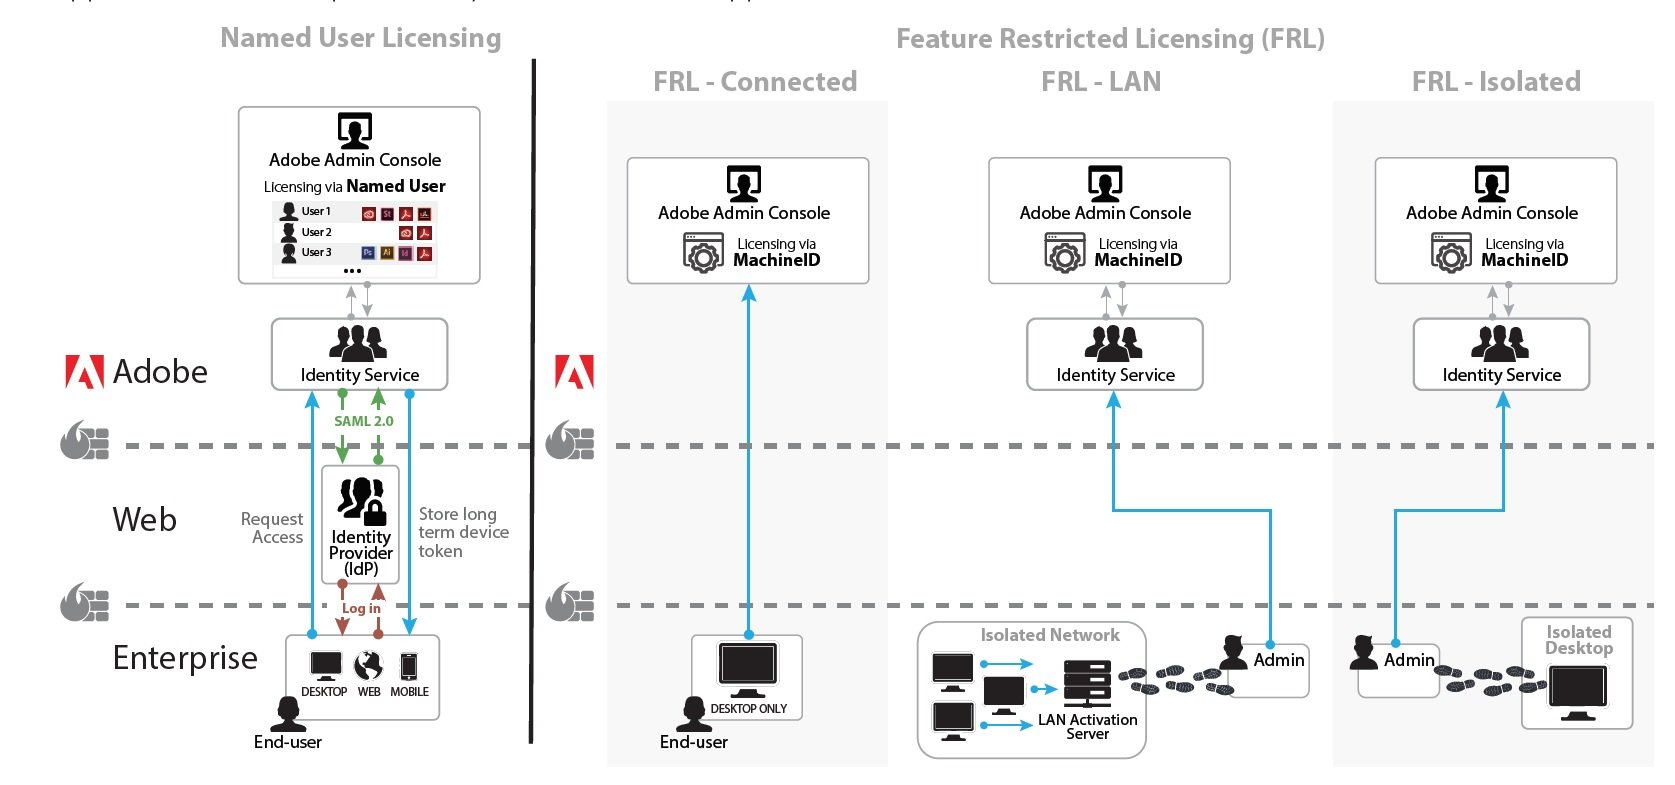 adobe feature restricted licensing schematic